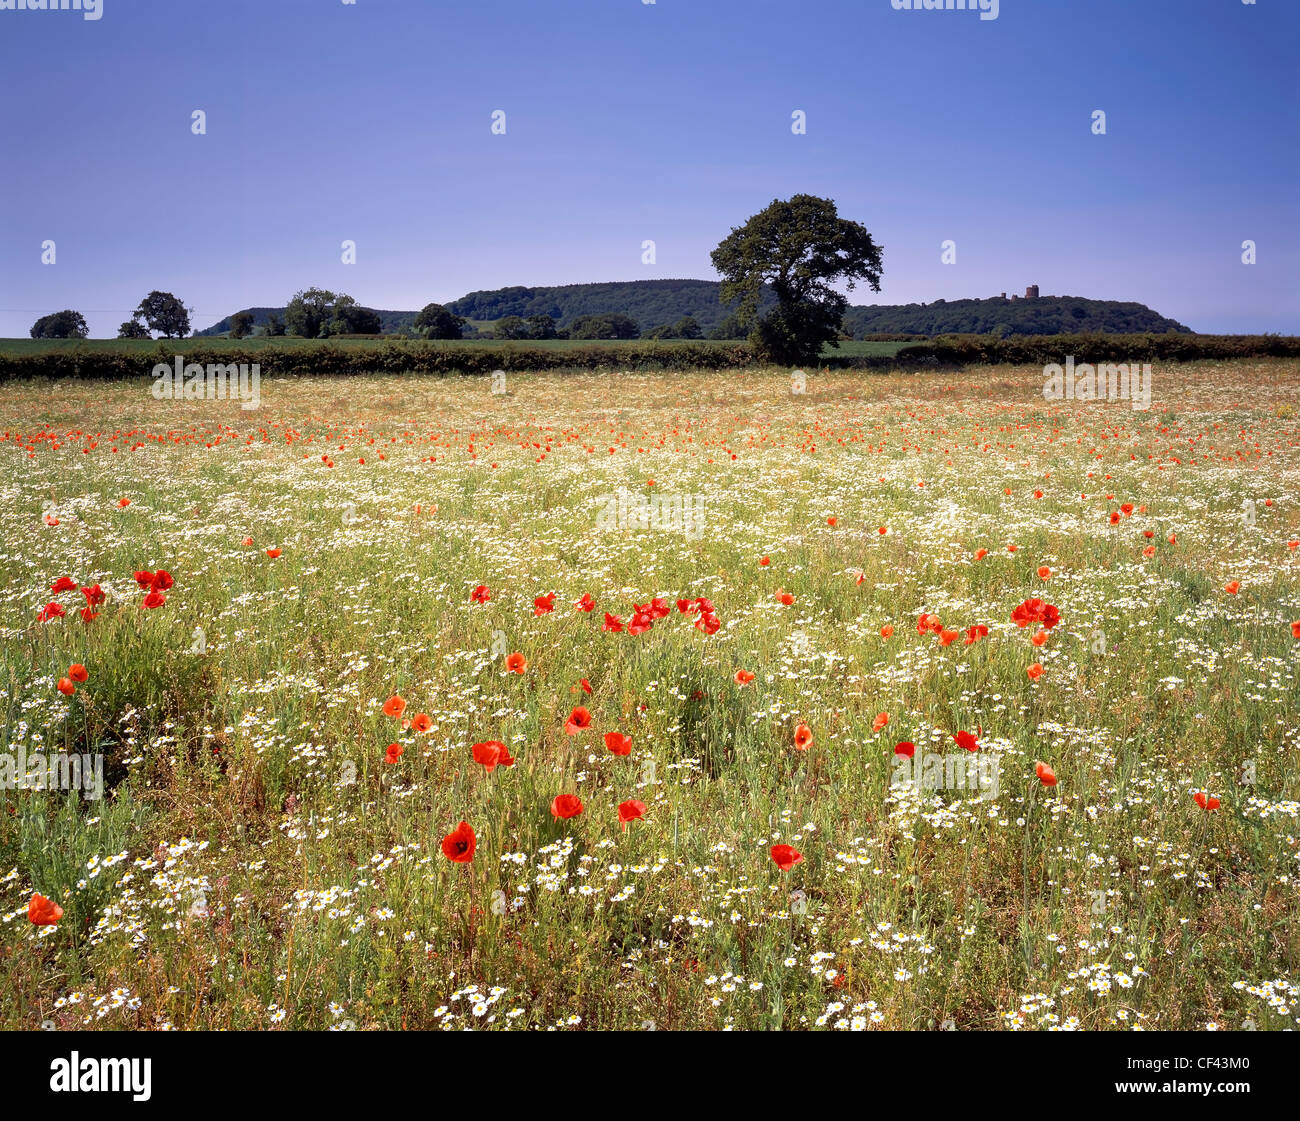 View over wild Poppies growing in a meadow towards Peckforton Castle. - Stock Image